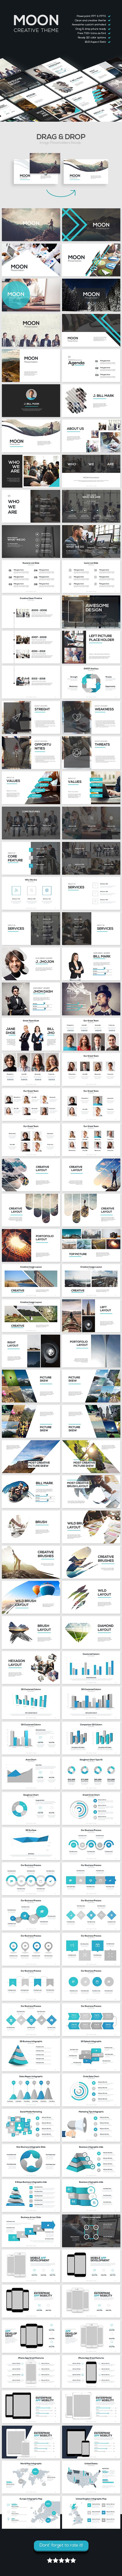 MOON - Creative Theme PowerPoint Template. Download here: http://graphicriver.net/item/moon-creative-theme/16281844?ref=ksioks